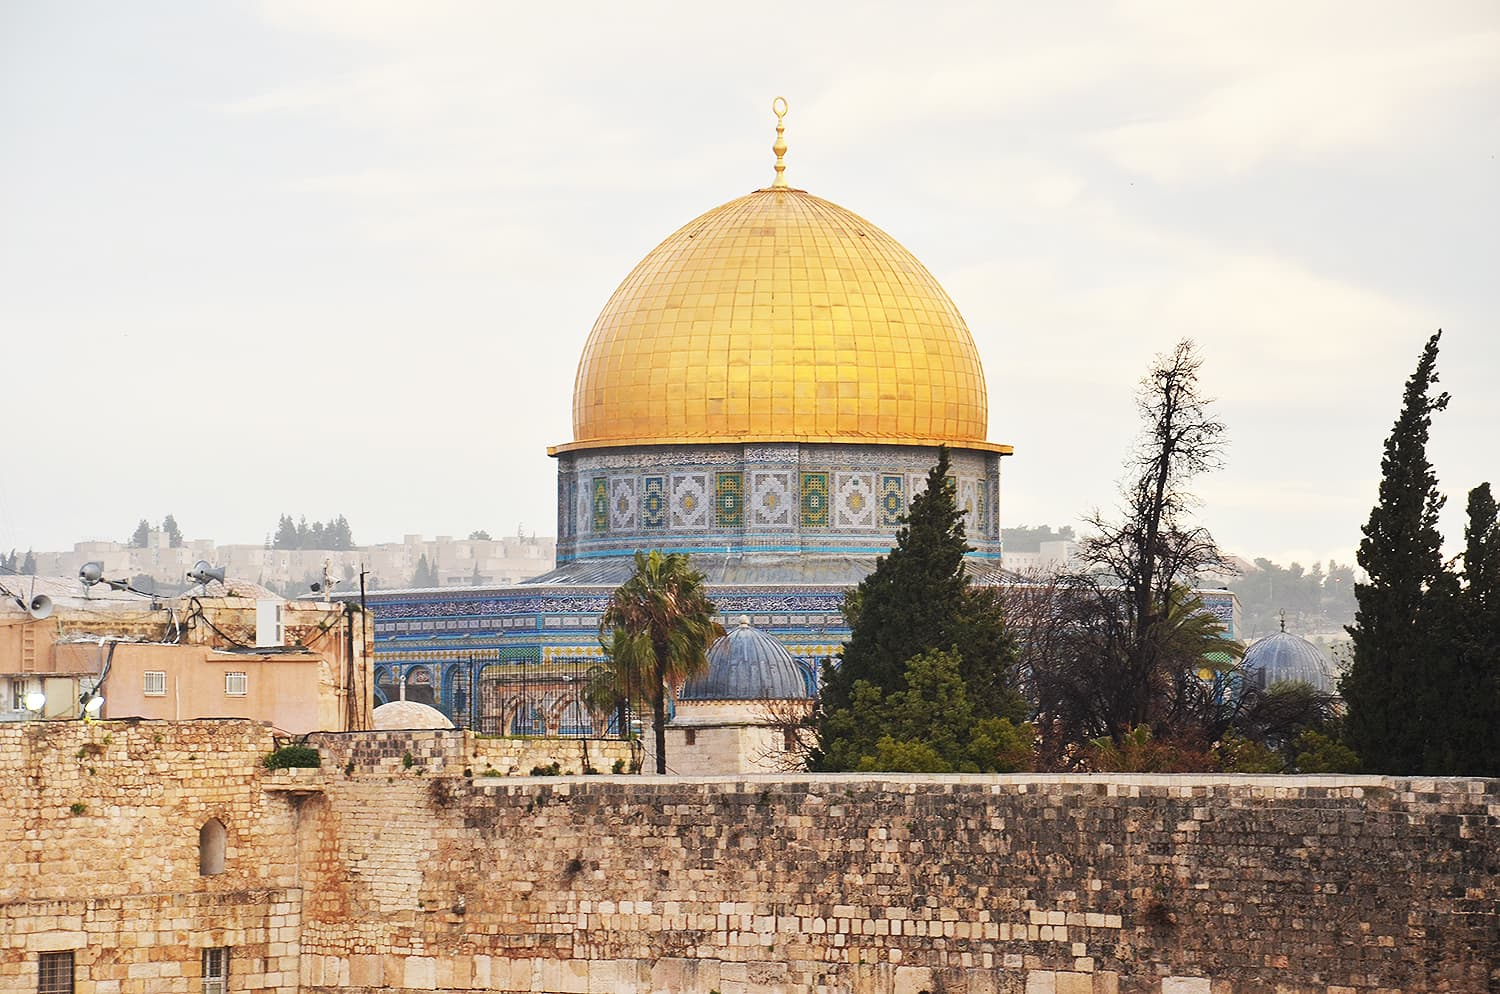 The Dome of the Rock from a distance.